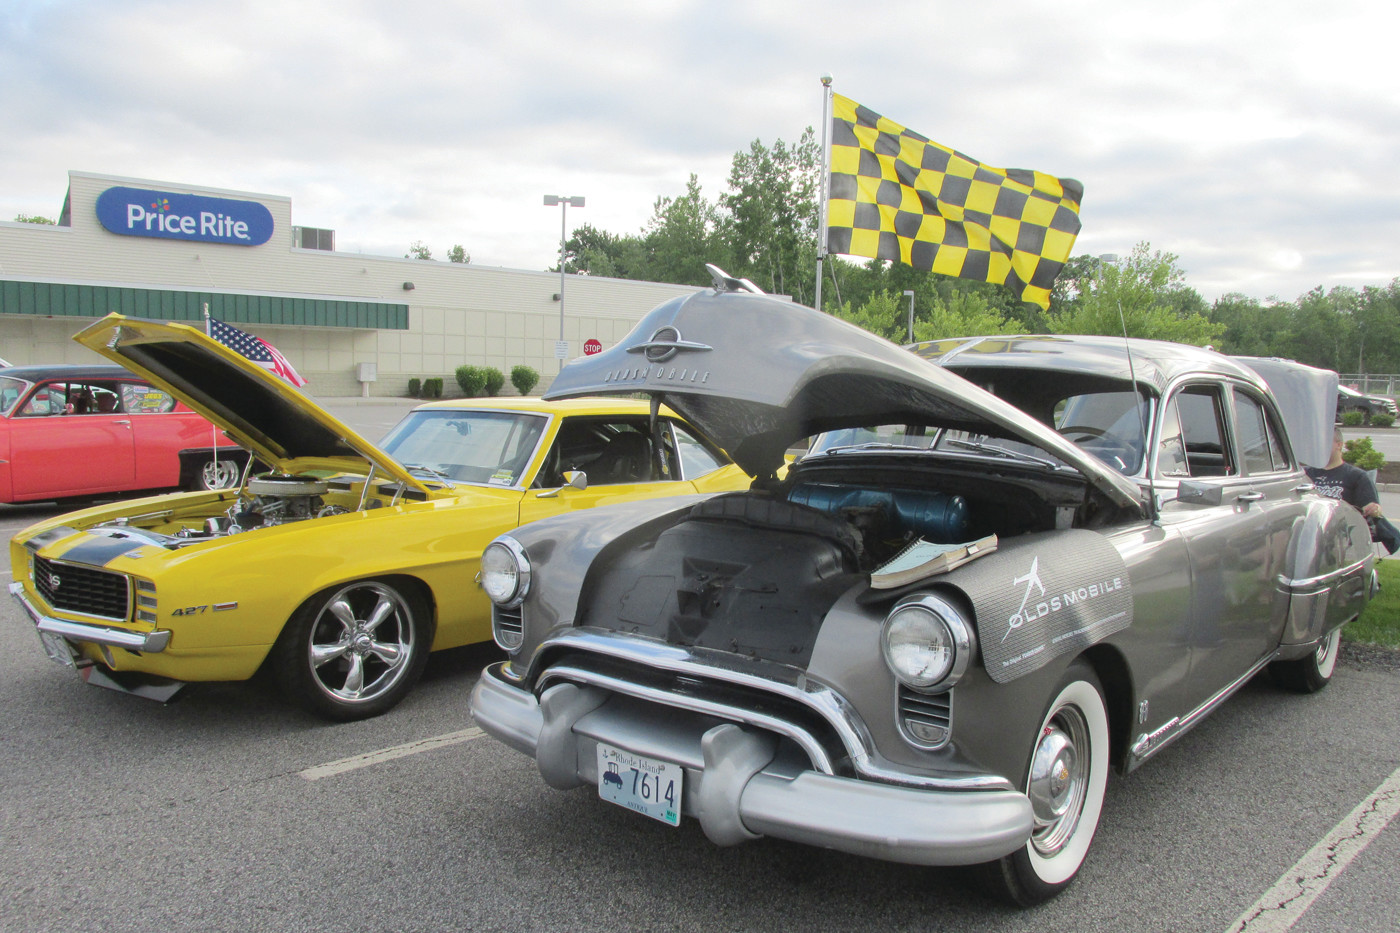 VINTAGE VEHICLES: This Daytona yellow 1969 Chevrolet Camaro SS (left) that's owned by Gary Maddocks and silver-gray 1949 Oldsmobile 88 that the pride of Johnston resident Alex Lucini were among the many classic cars on display during last Thursday's Cruizin' for a Cause. (Sun Rise photos by Pete Fontaine)